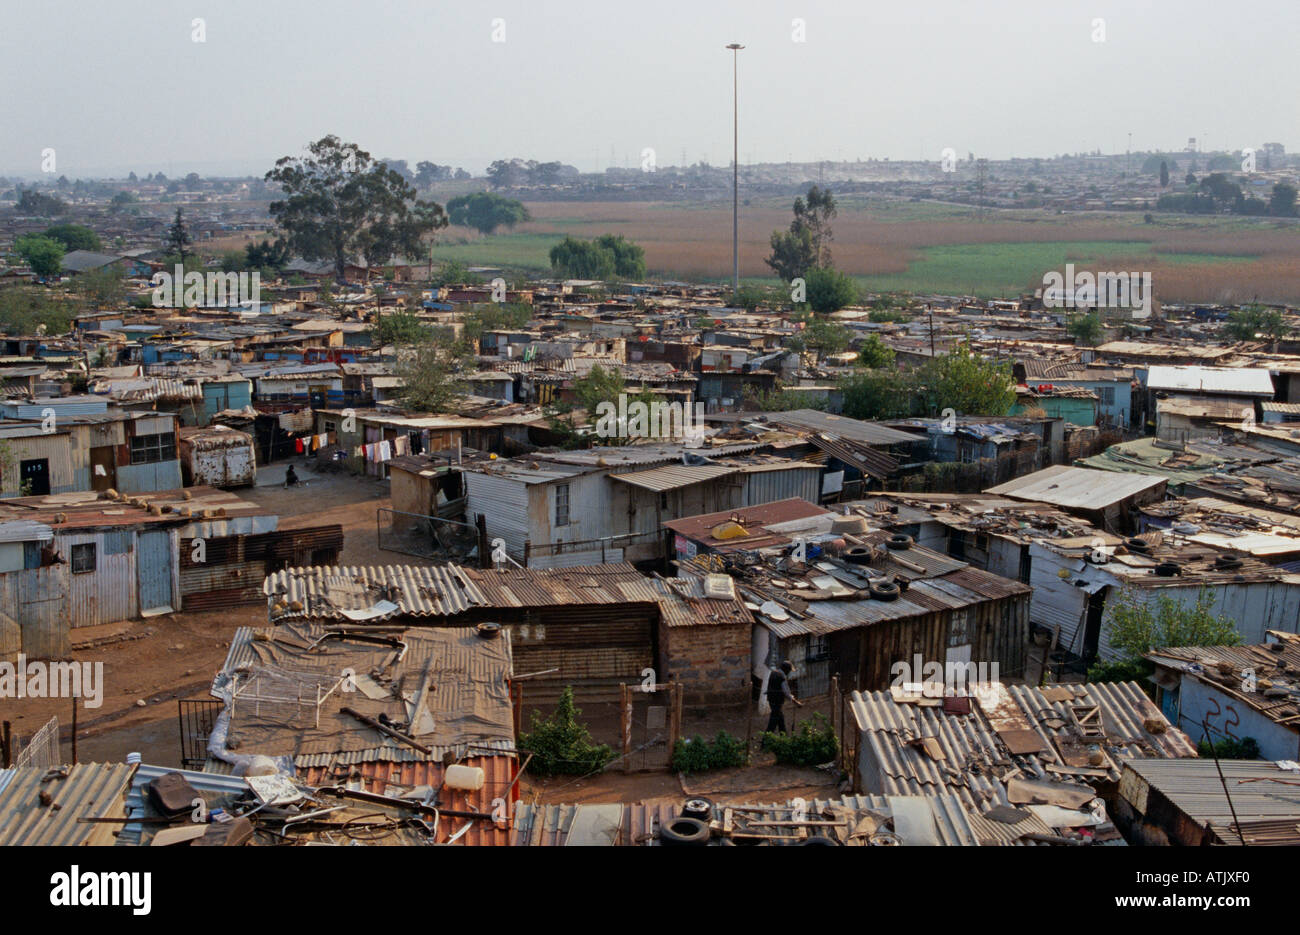 A View Of Township Durban South Africa Stock Photo